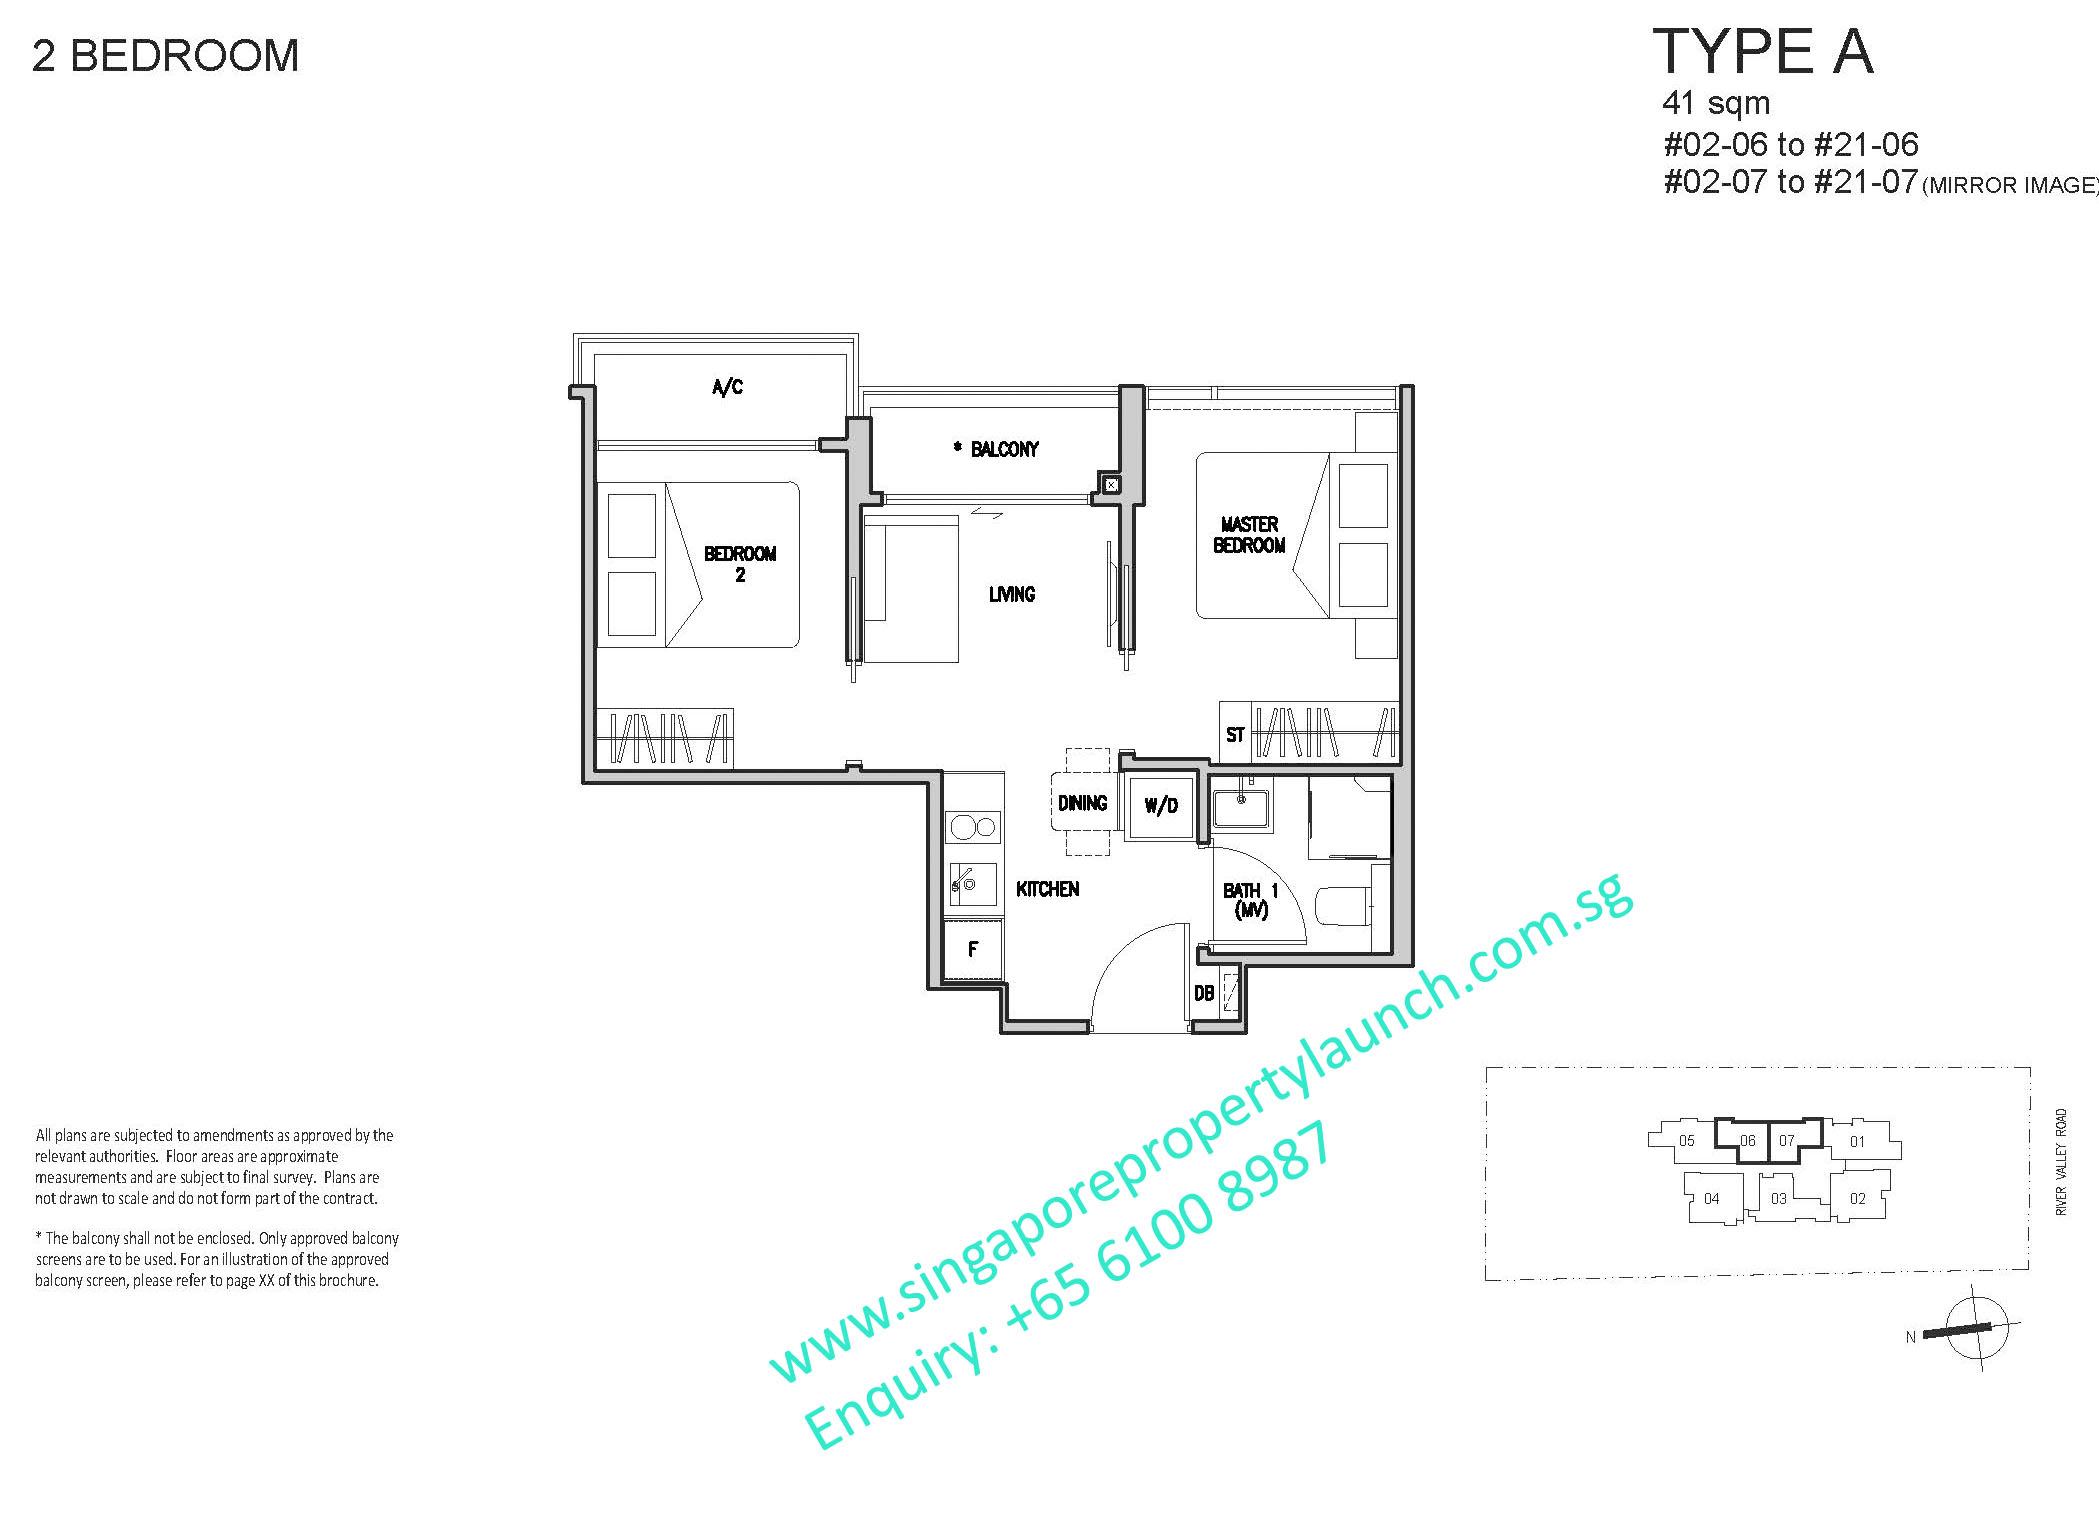 RV Altitude floor plan 2 bedroom type A